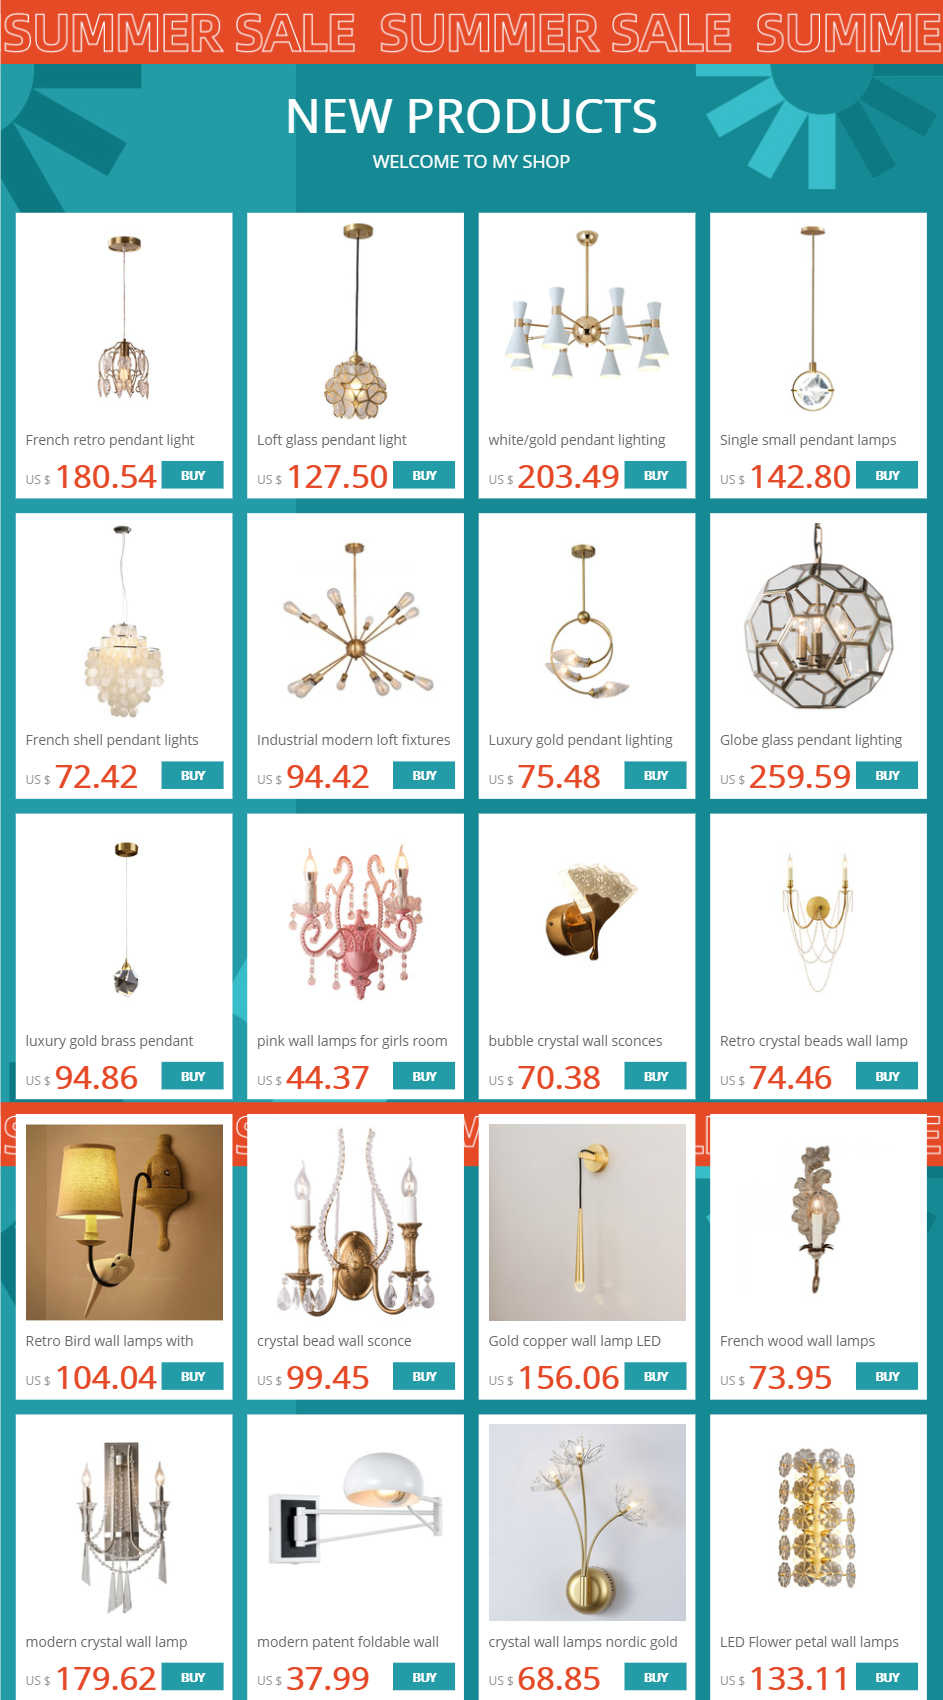 Hd7ed487f643242f997a49428f3d83624p - Antique brass wall lamp glass cylinder shade home indoor decorative wall lights in bedroom bedside wall mounted sconce interior